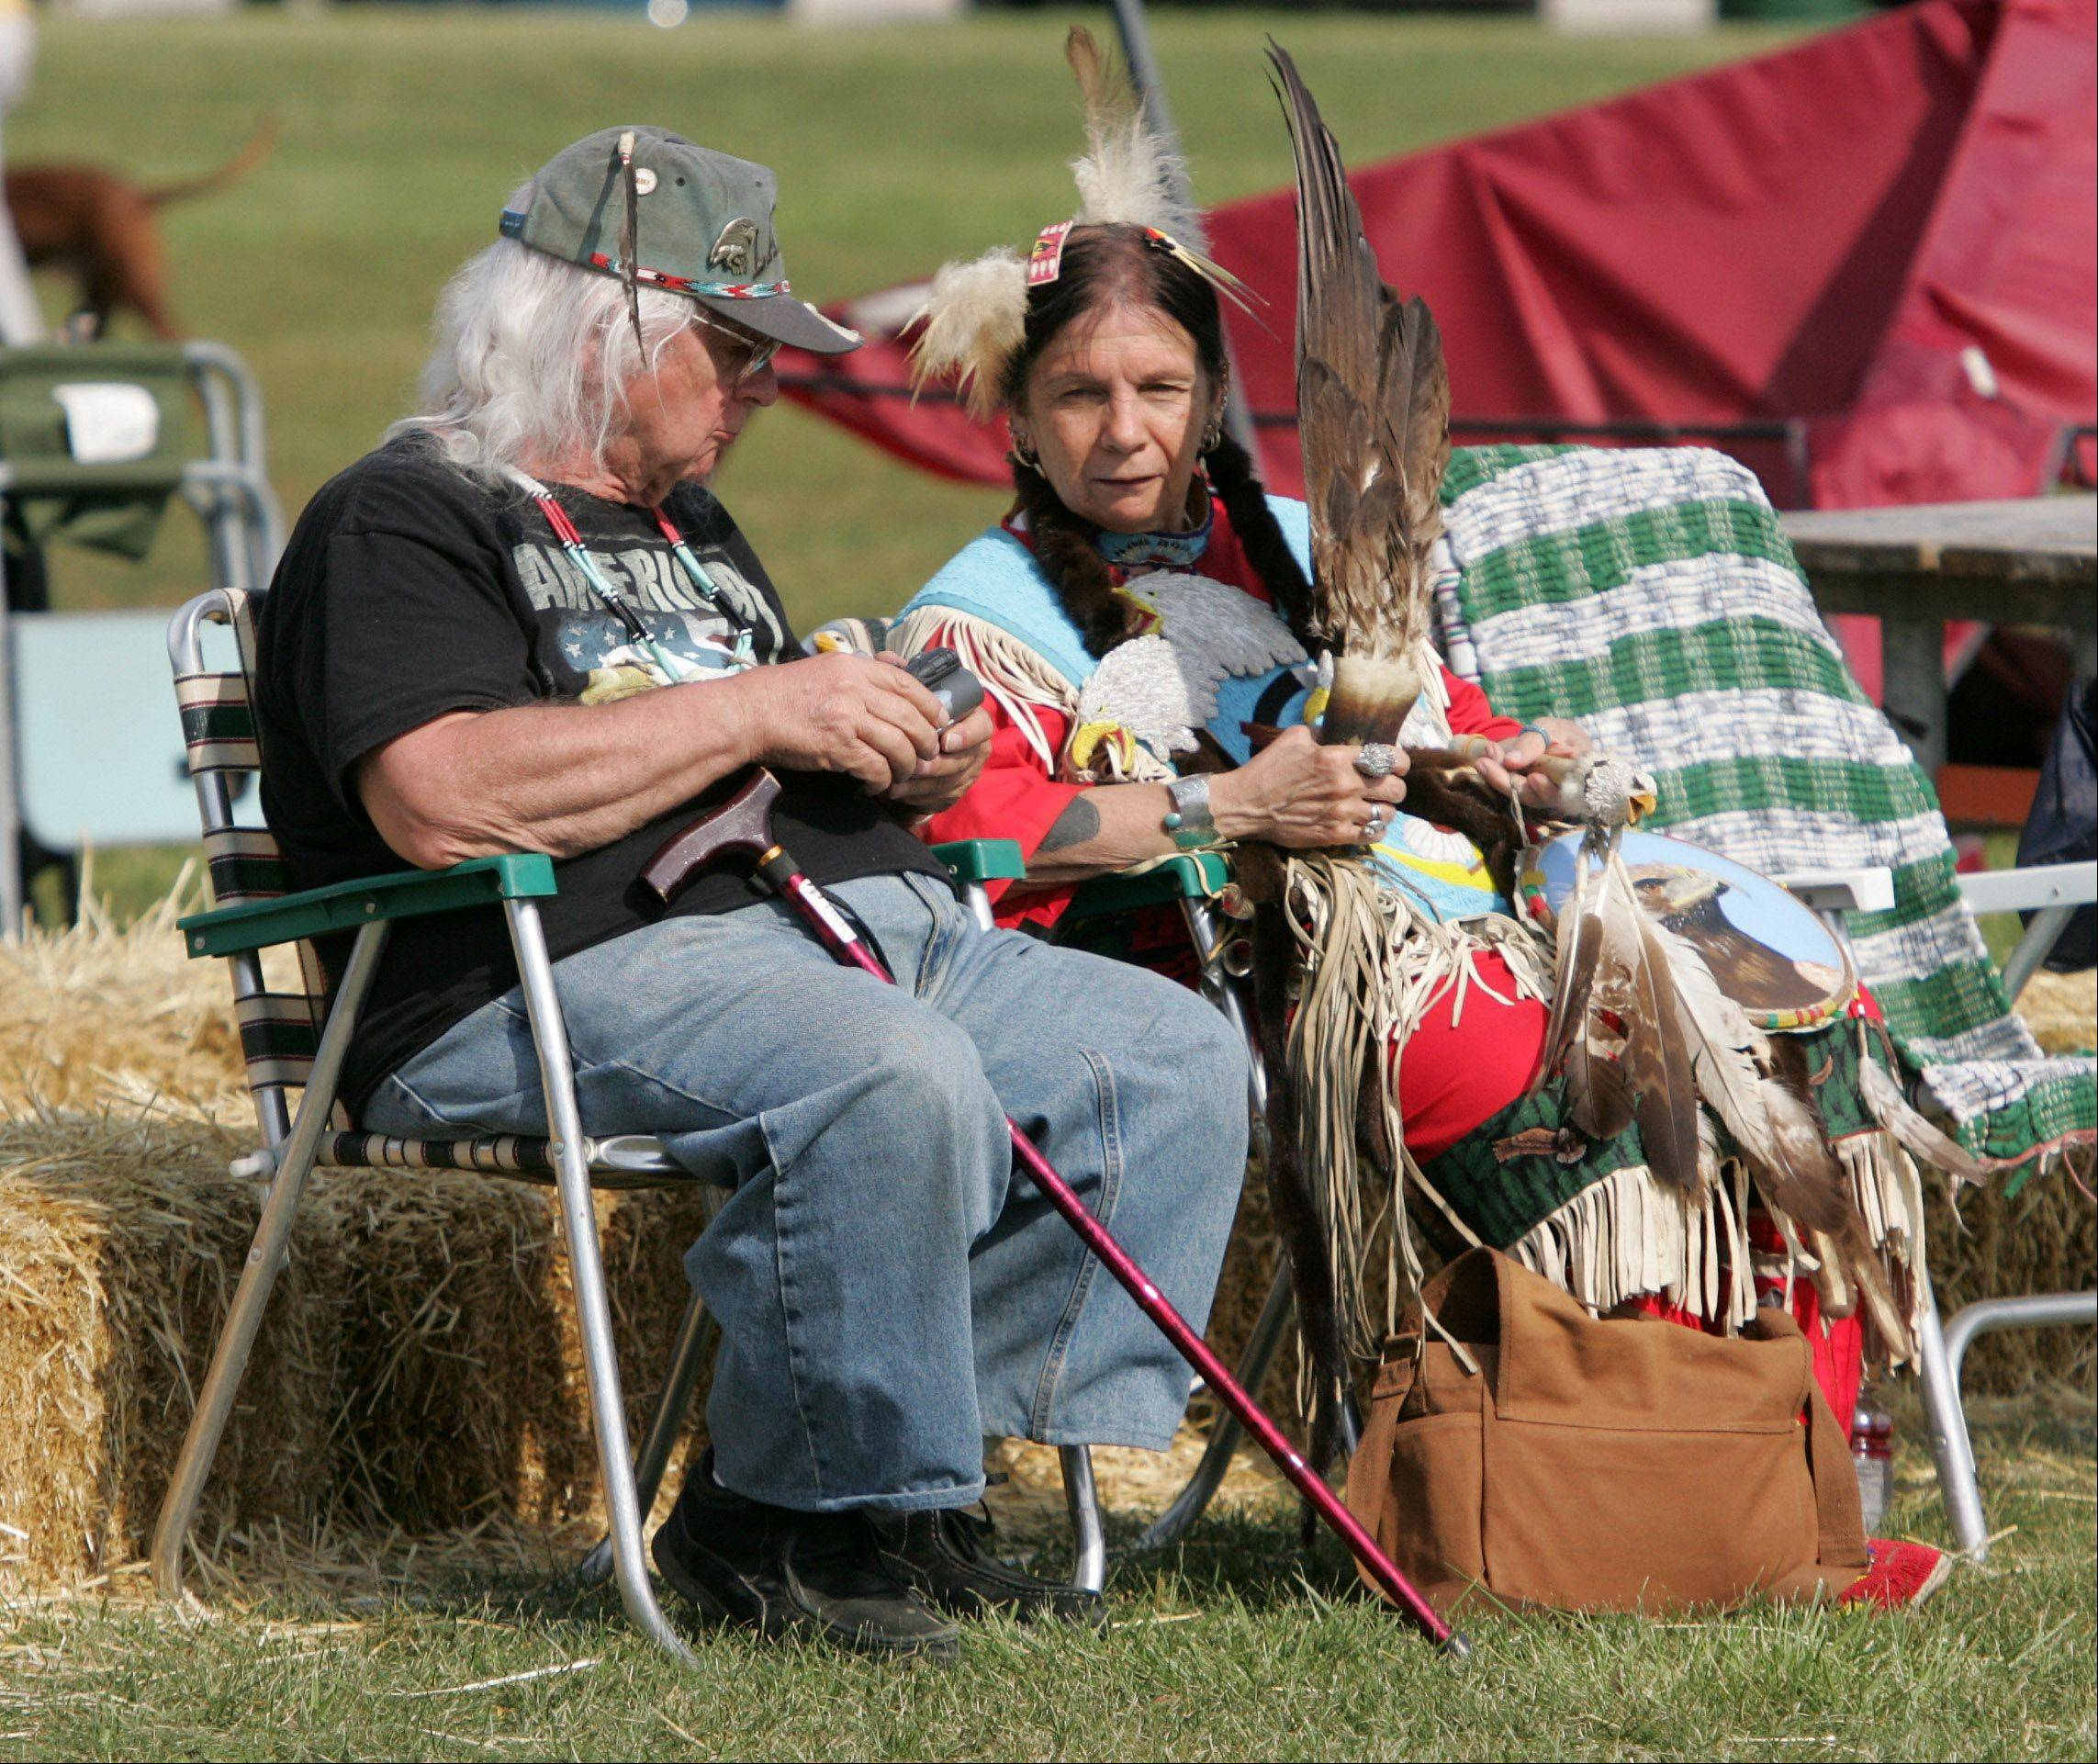 Lakota Indians Ronald and Barb Wolfbear, of Glen Ellyn, wait for the start of the Grand Entrance during the 59th Annual American Indian Center Pow Wow at Busse Woods Forest Preserve in Elk Grove Village. The event features Native American dance competition, singers, artists, food vendors, storytelling and archery.